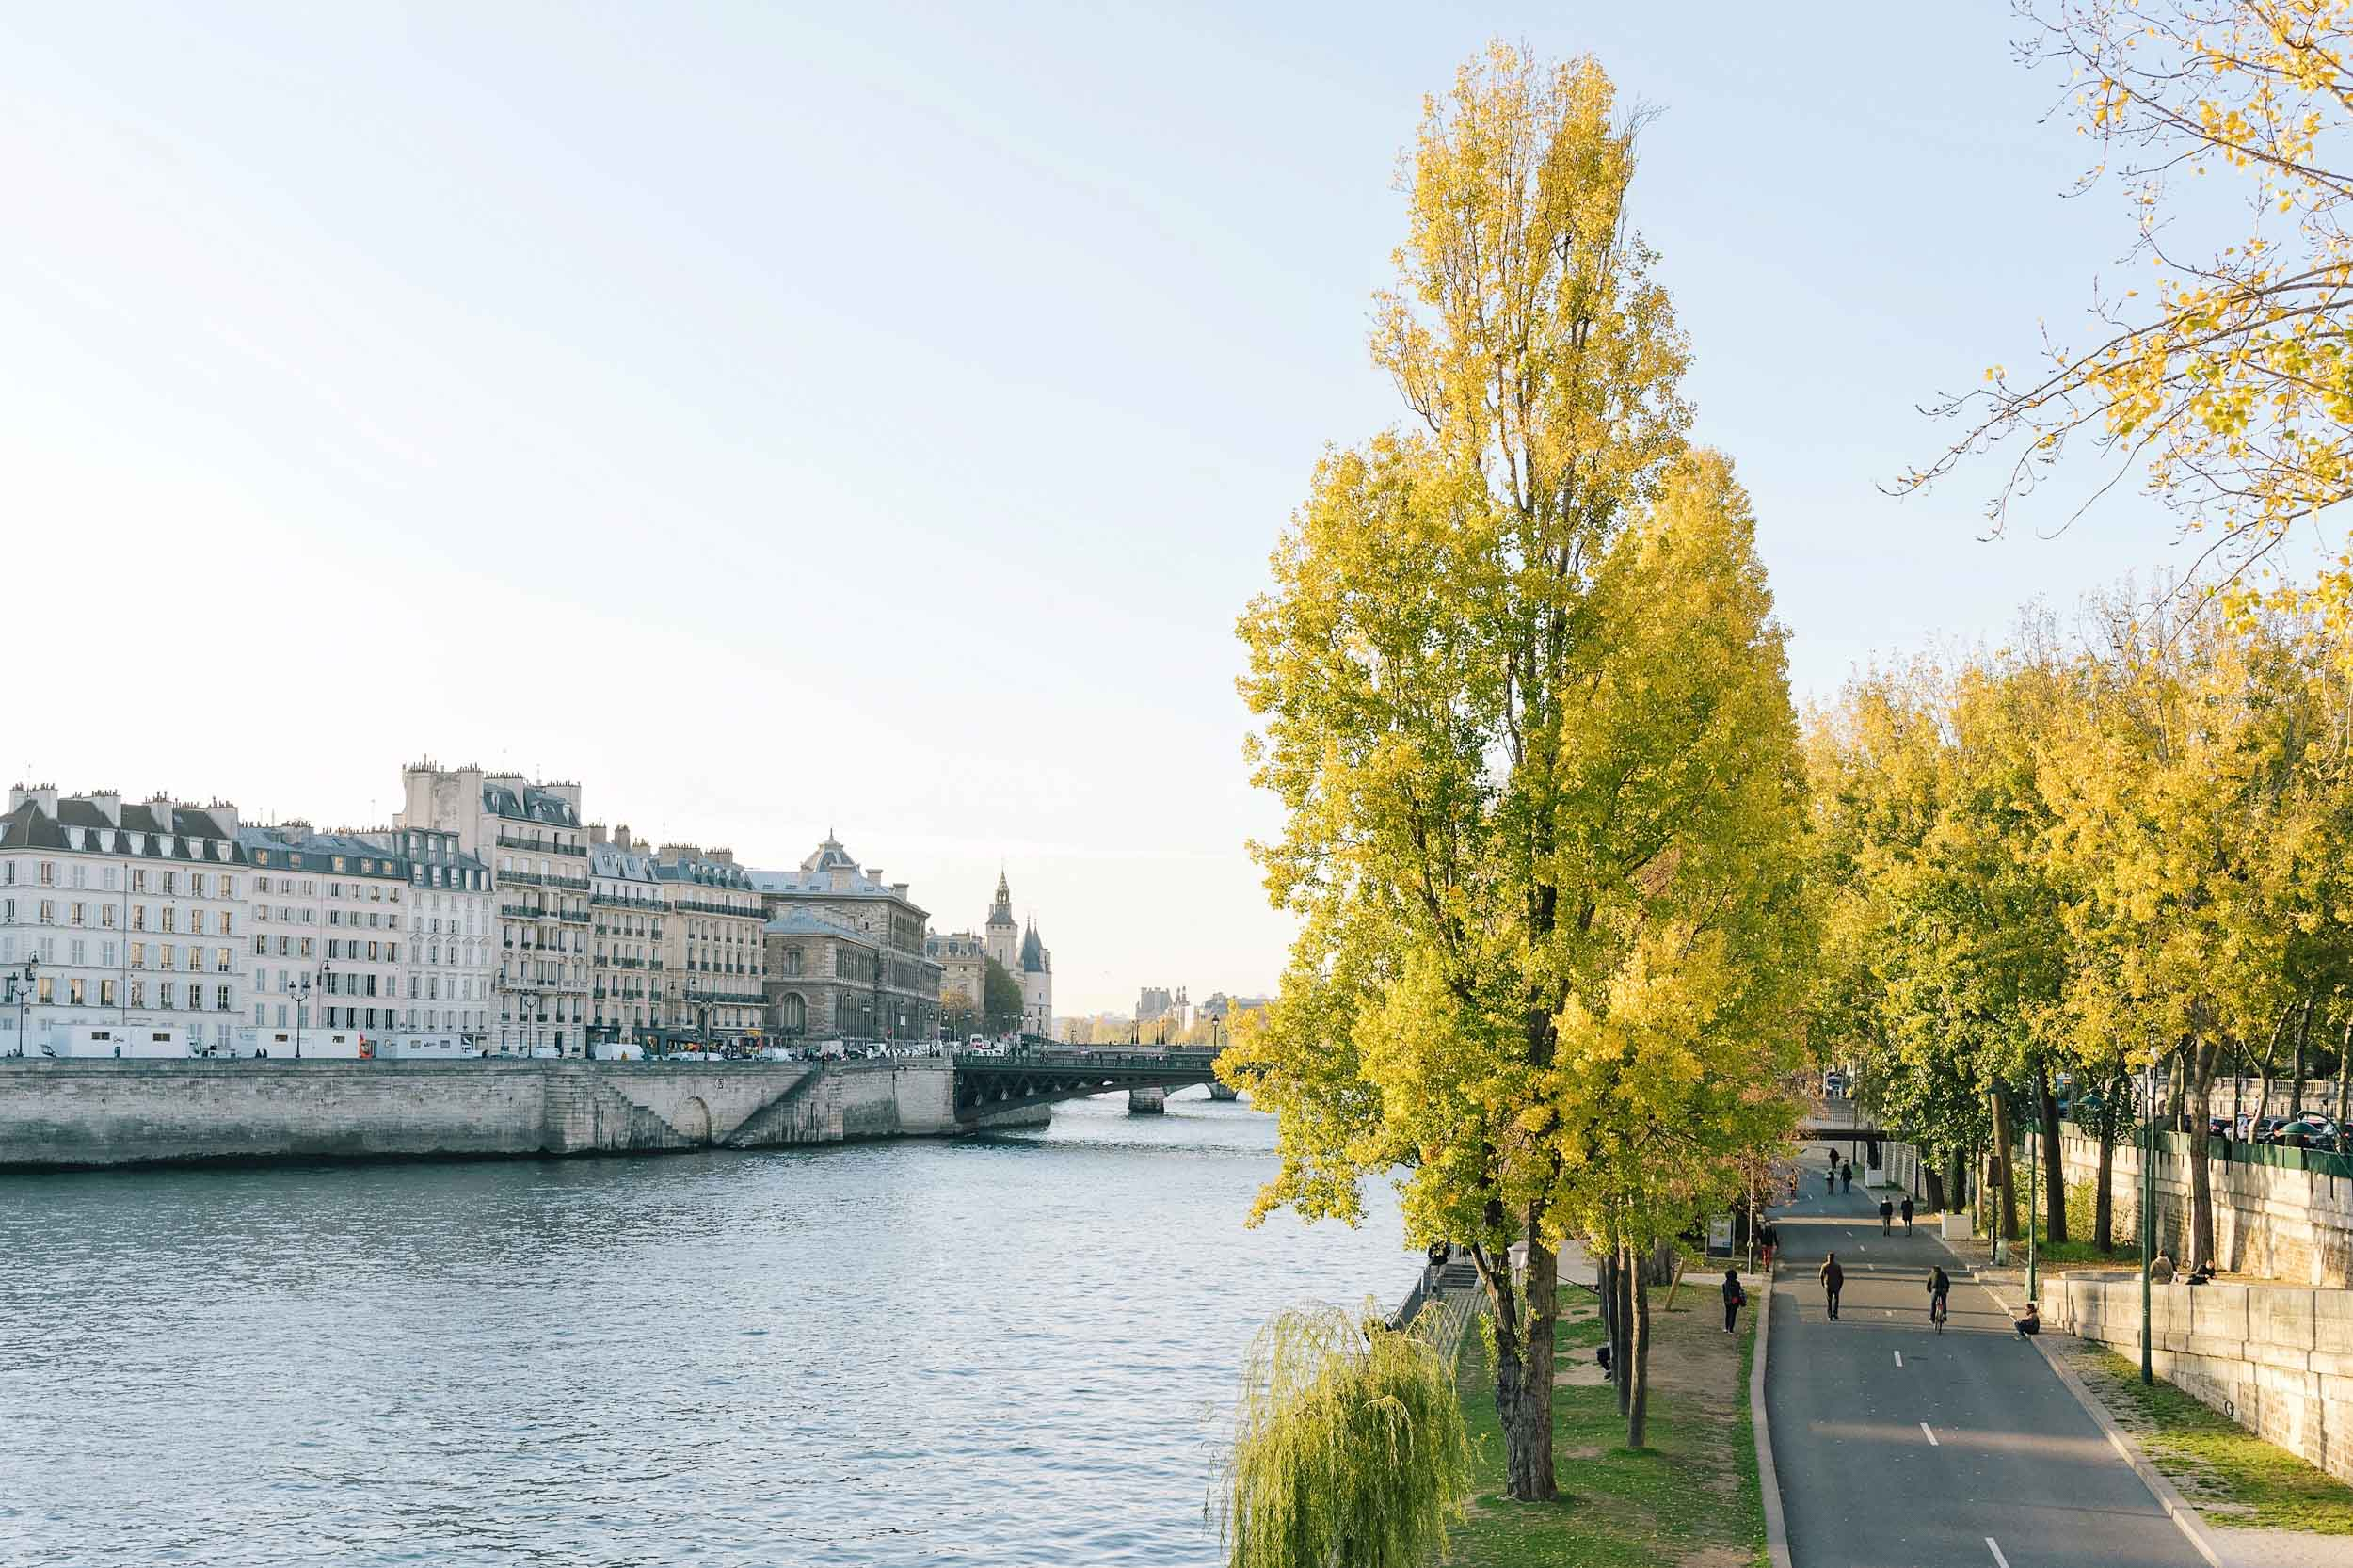 In fall the temperature in Paris starts to drop back down fairly quickly, with lows of 39 by November and highs of 69 still in September